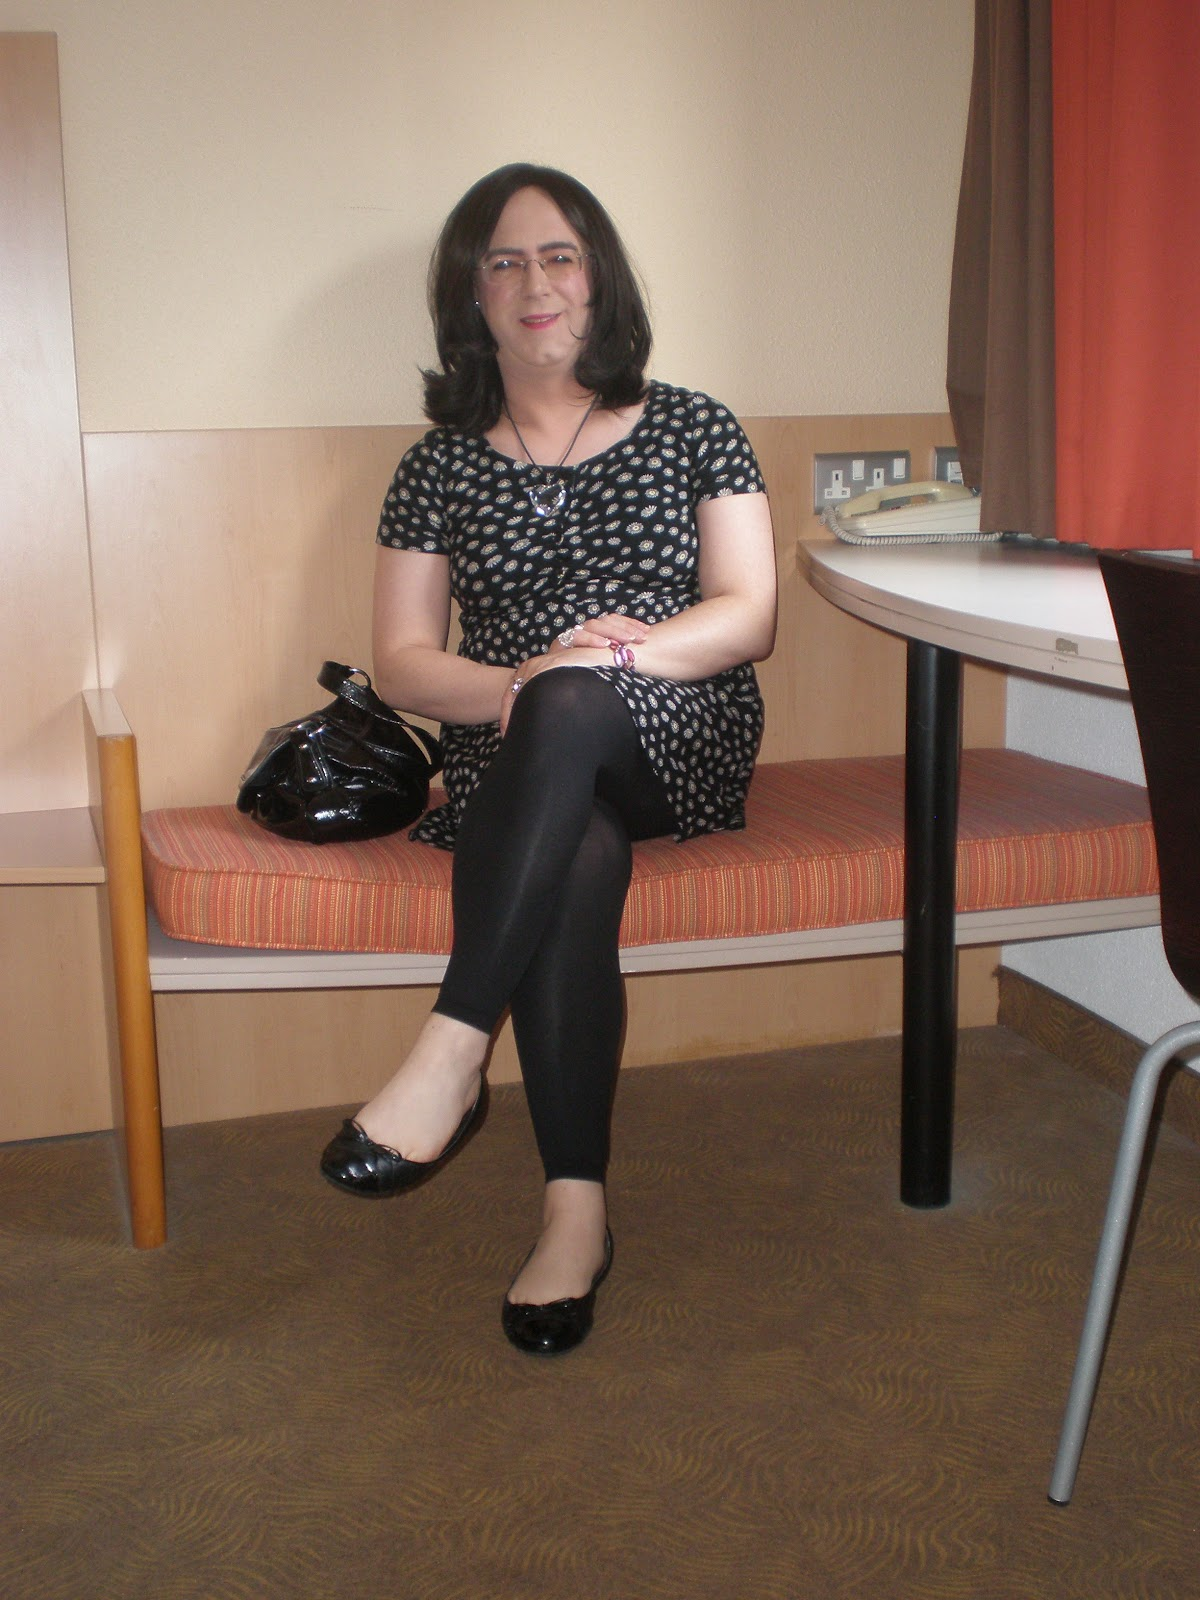 Amateur Tgirl sue's news and views: 2012